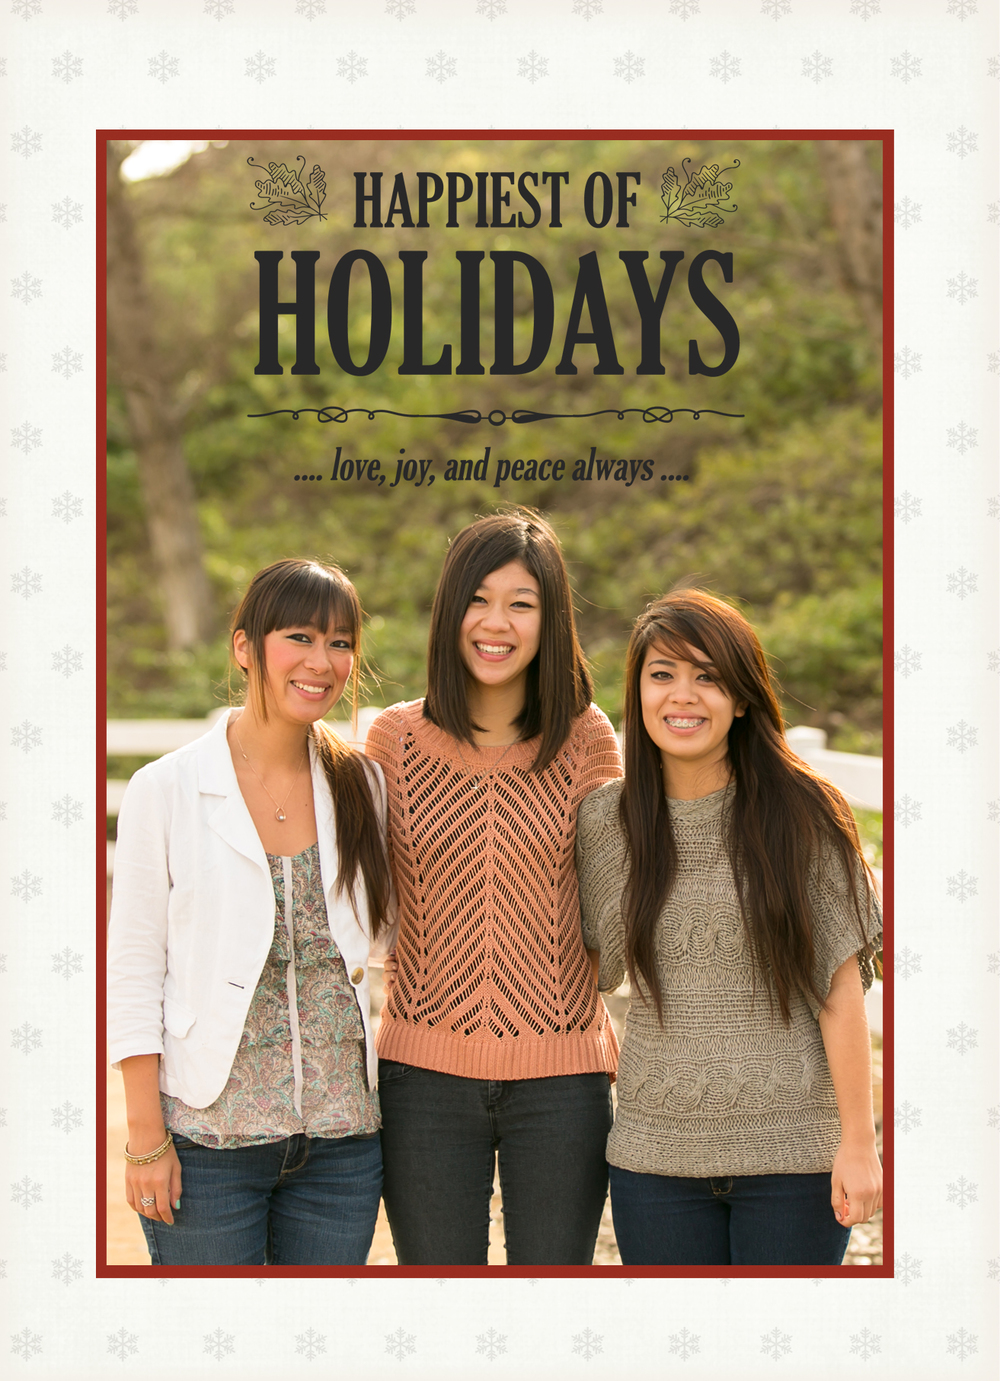 GHP_holiday_sample4.jpg